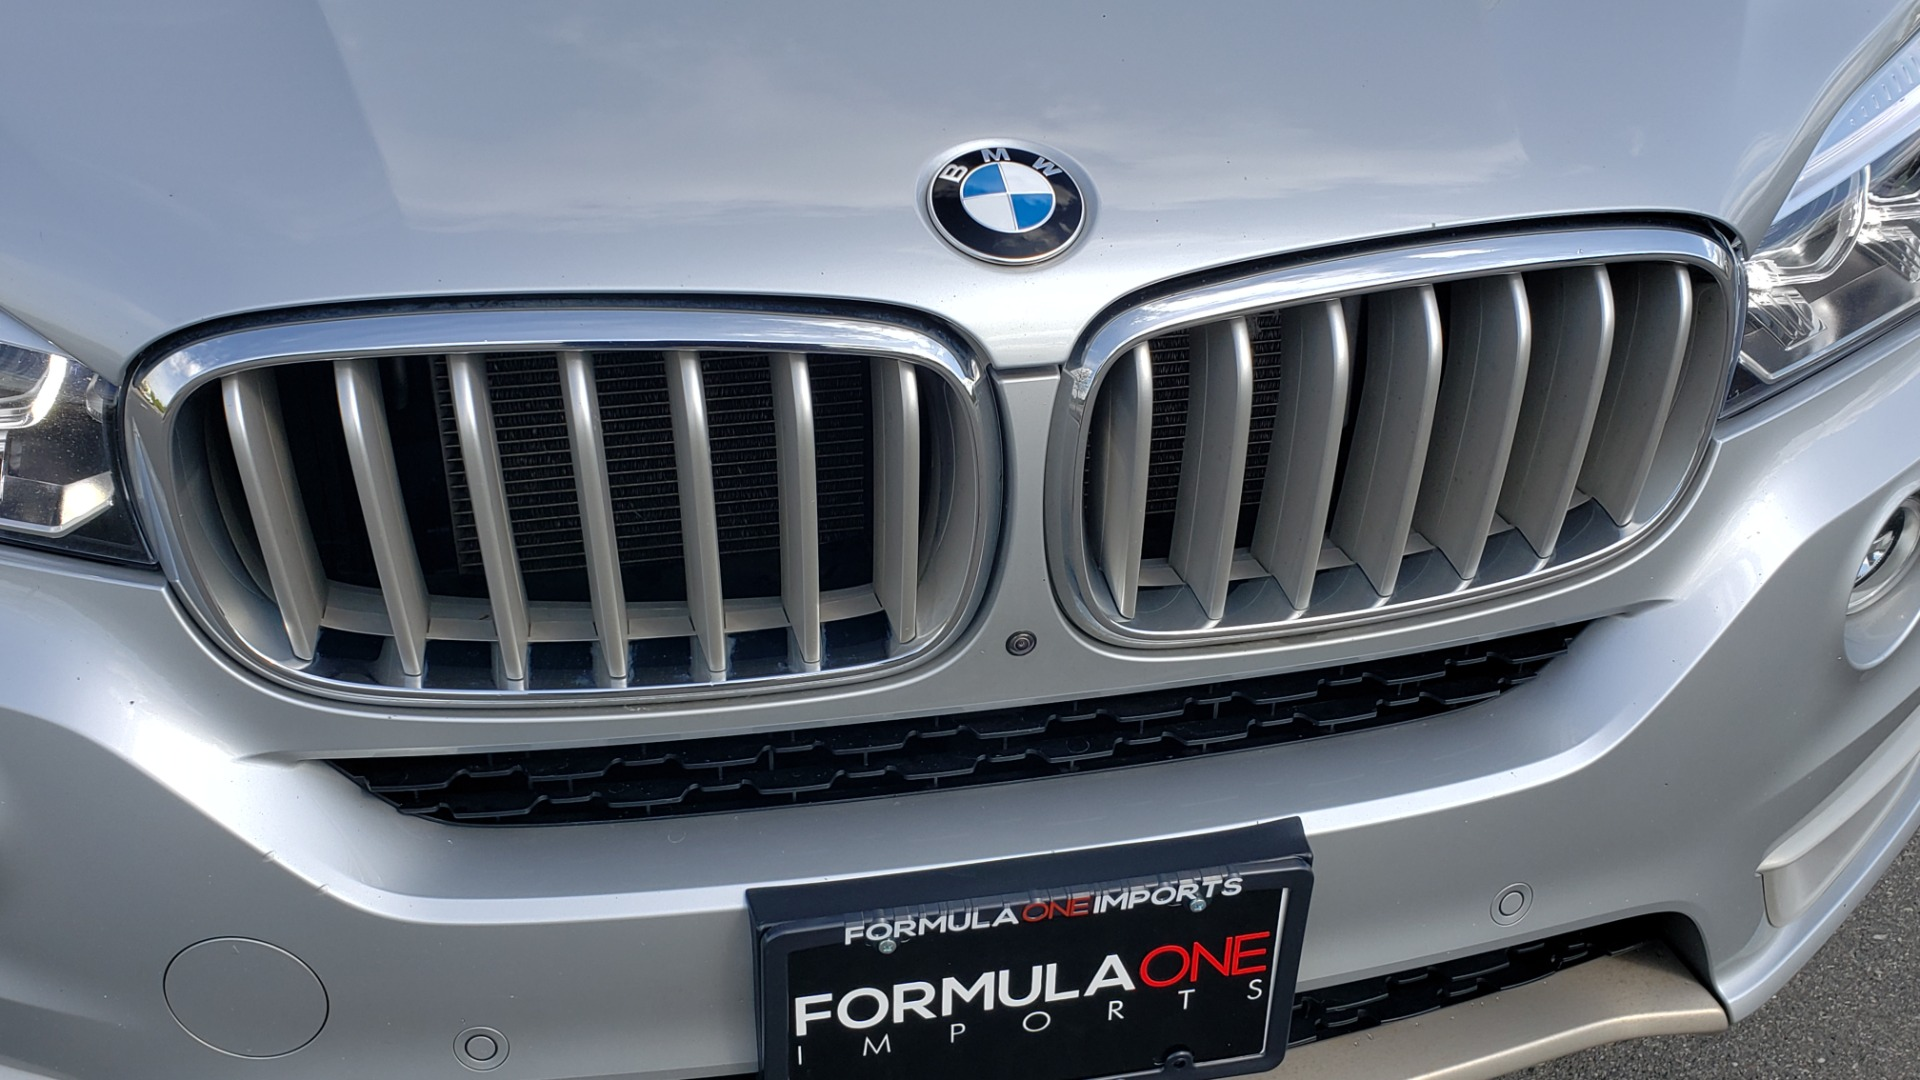 Used 2018 BMW X5 XDRIVE35I PREMIUM / NAV / PANO-ROOF / DRIVER ASST / REARVIEW for sale Sold at Formula Imports in Charlotte NC 28227 25